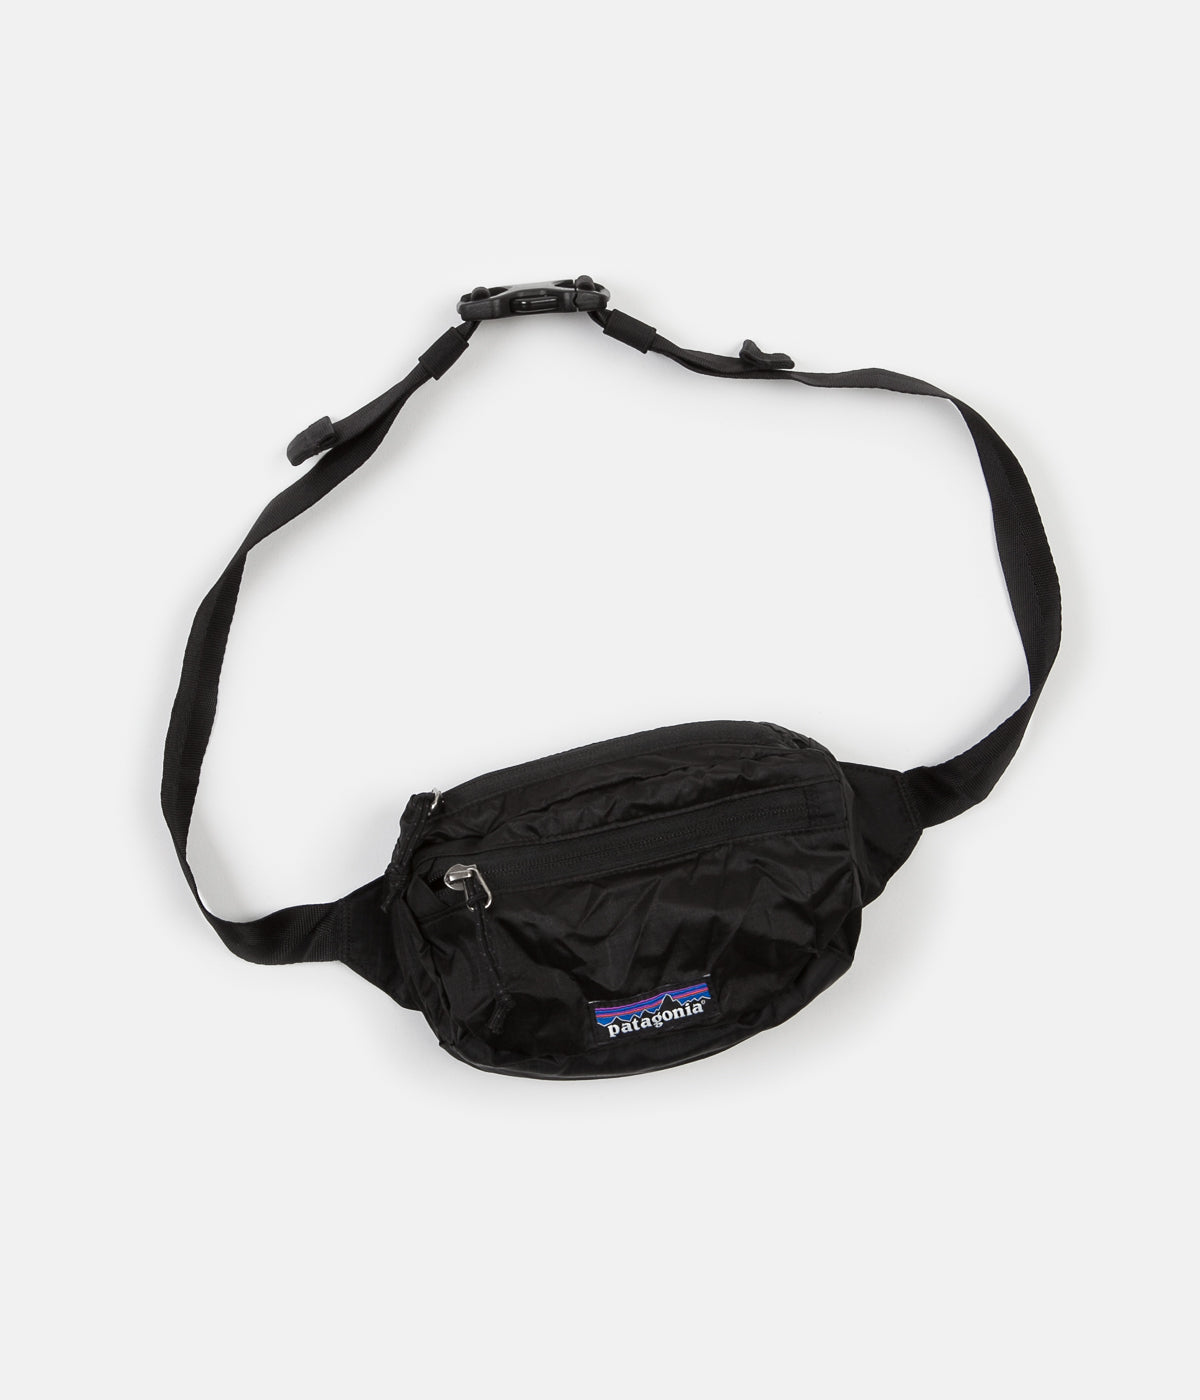 Patagonia Lightweight Travel Mini Hip Pack - Black